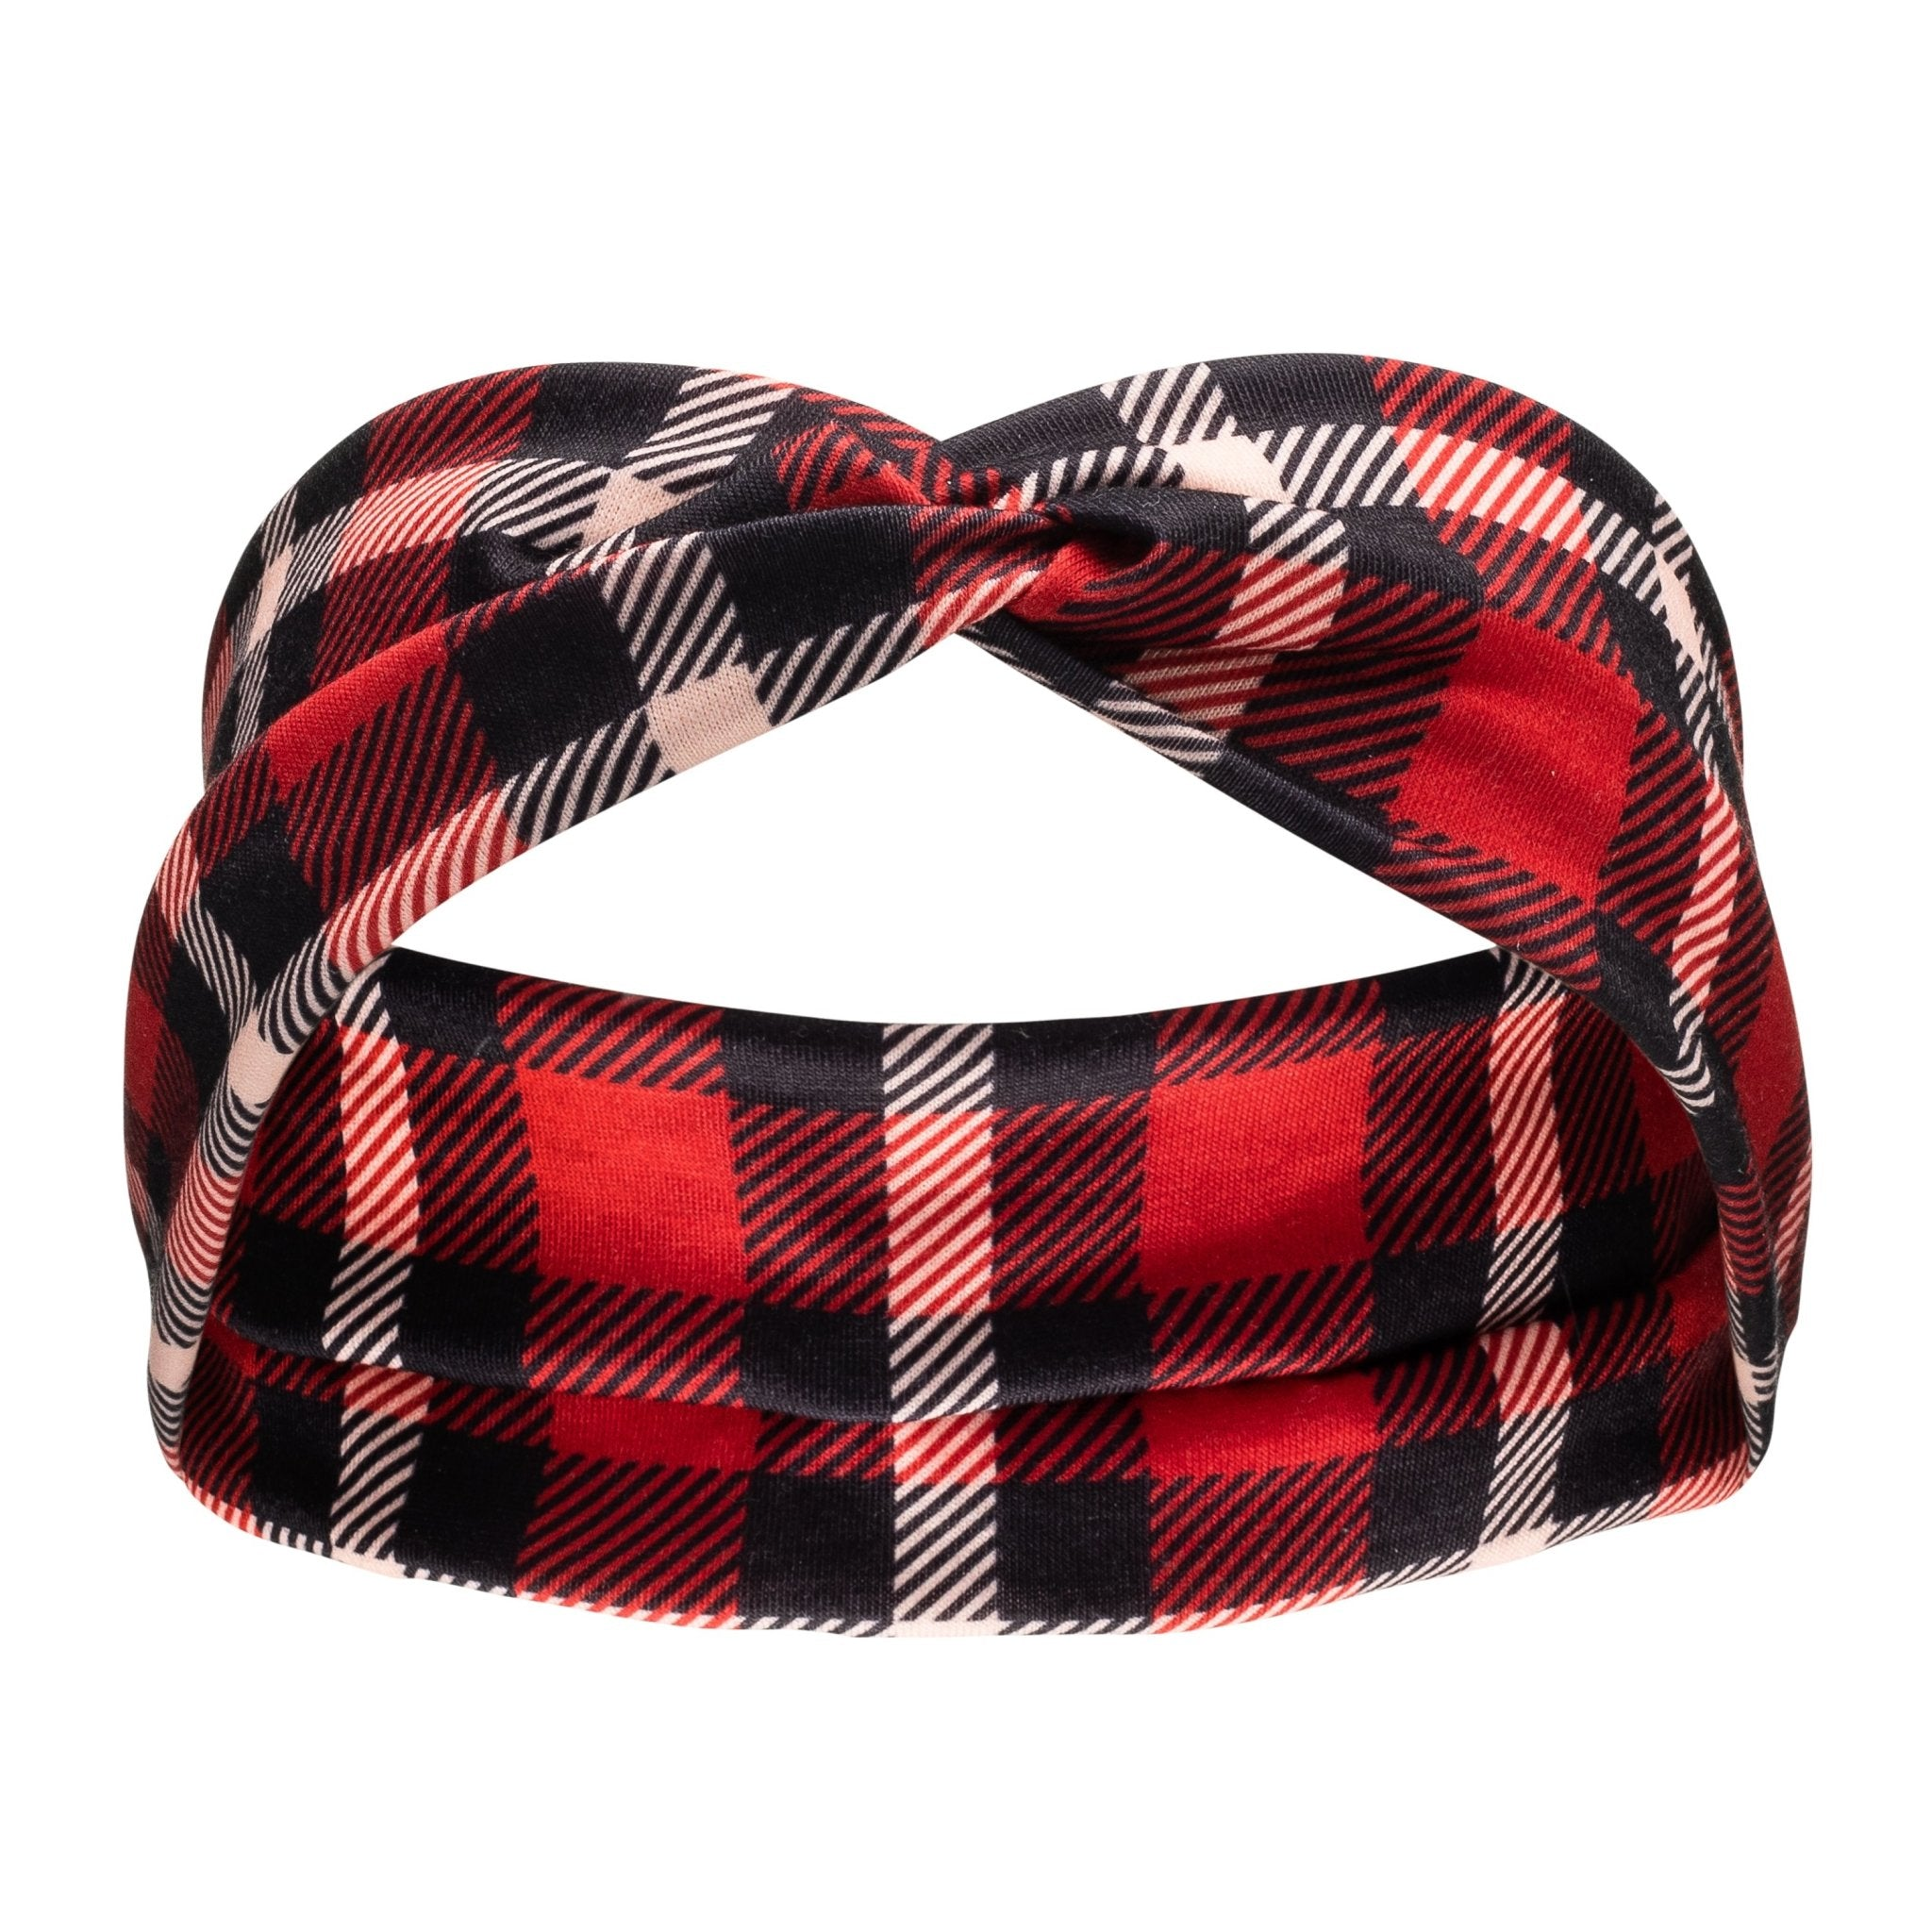 Matching Headband - Red and Black Plaid - Canine Compassion Bandanas